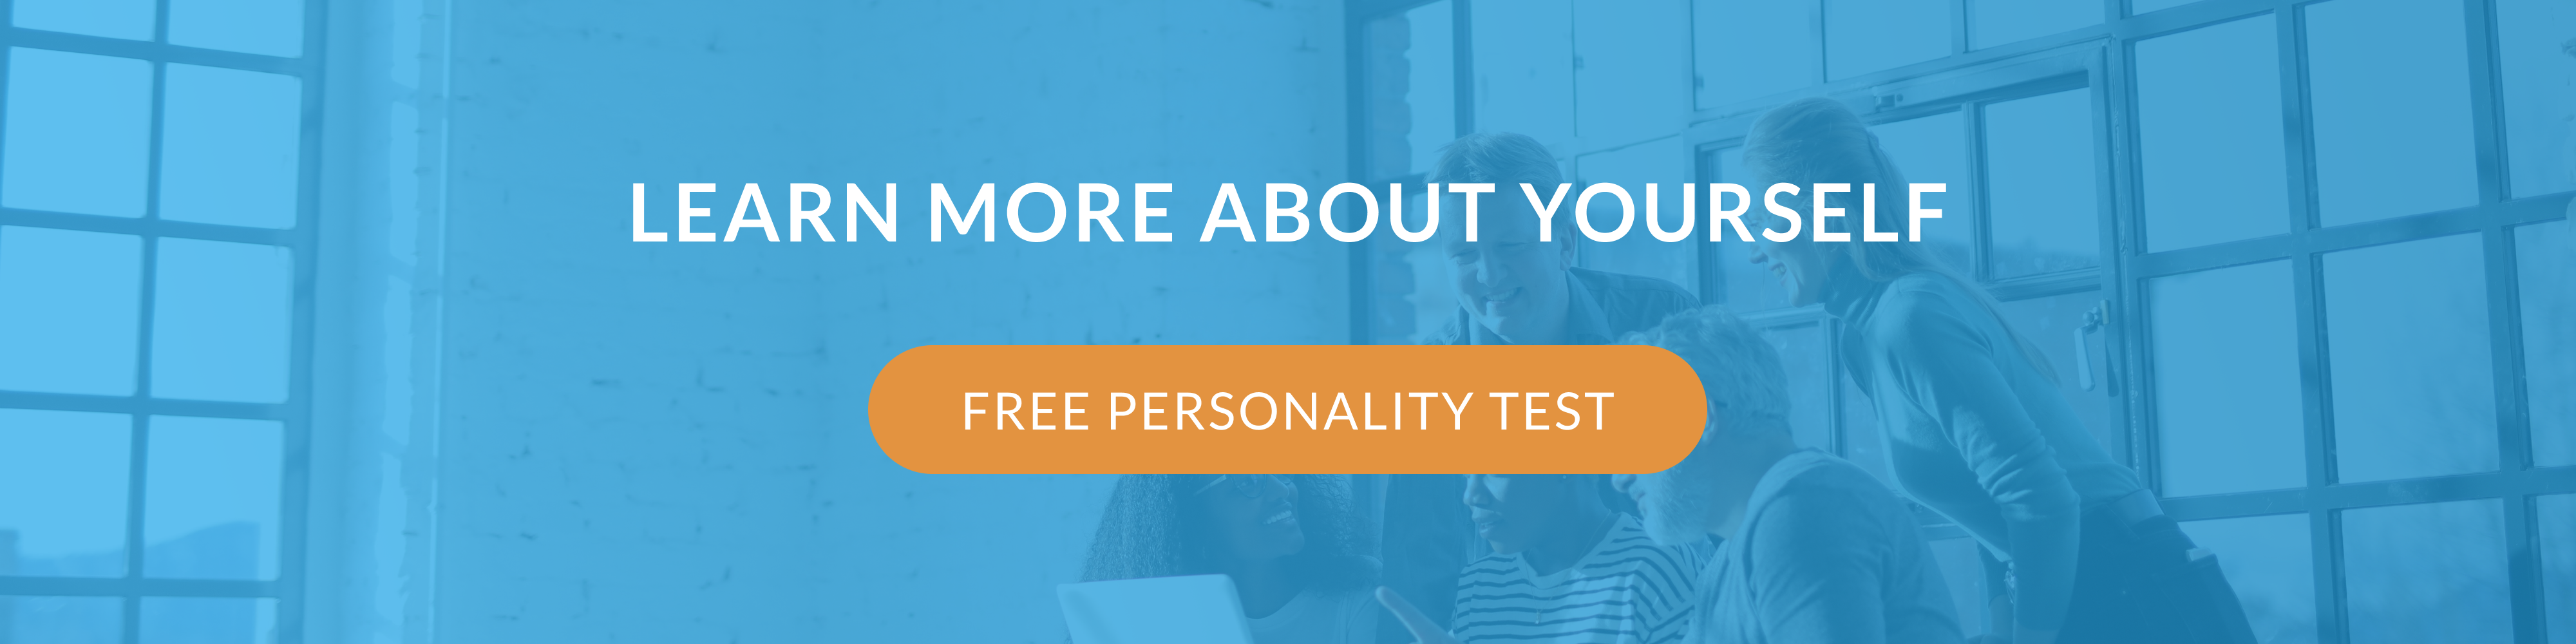 Free personality test from Crystal.